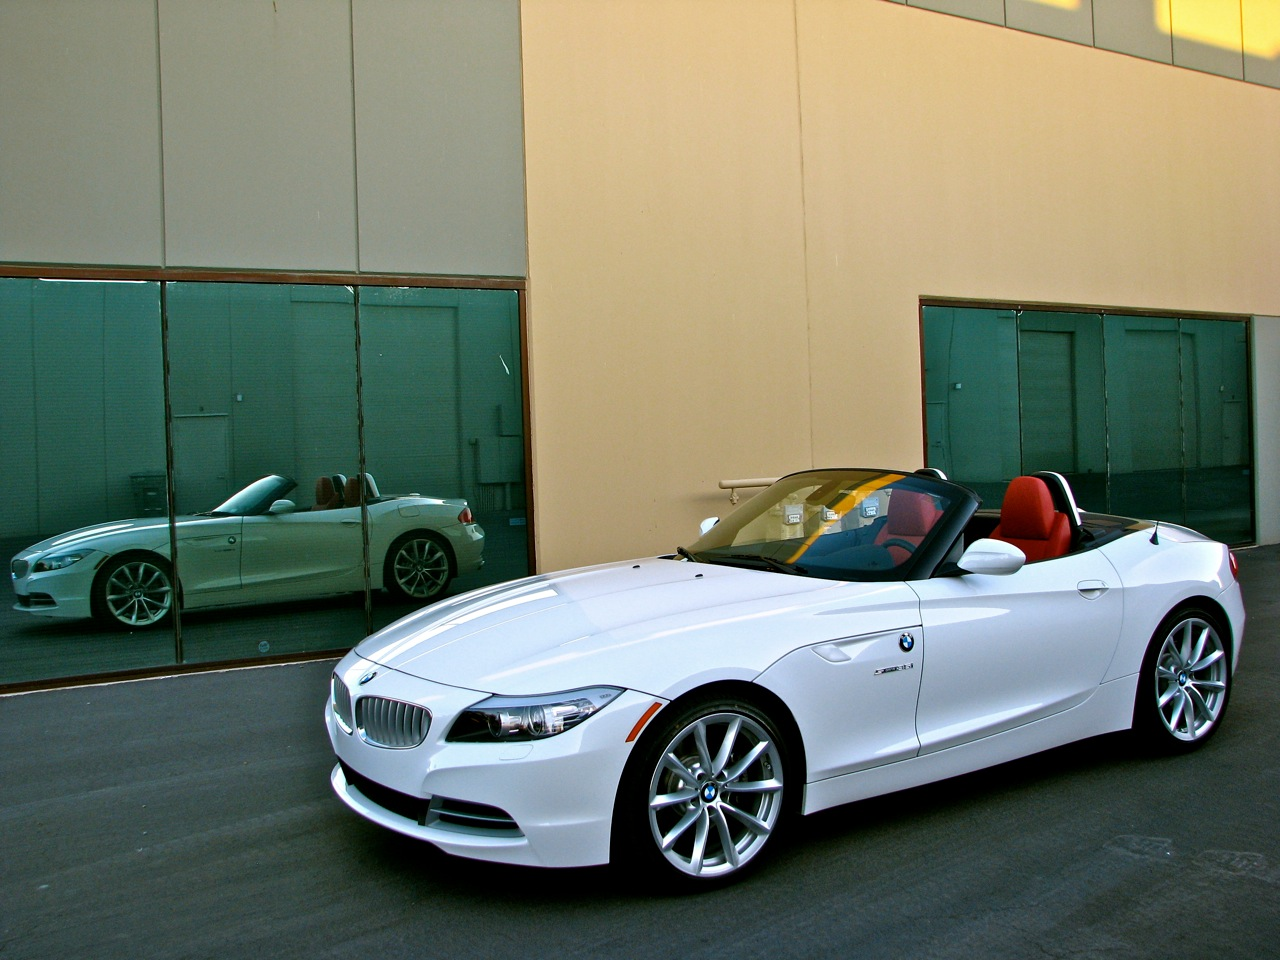 Took More Shots Of My 2010 Alpine White Z4 Earlier Today